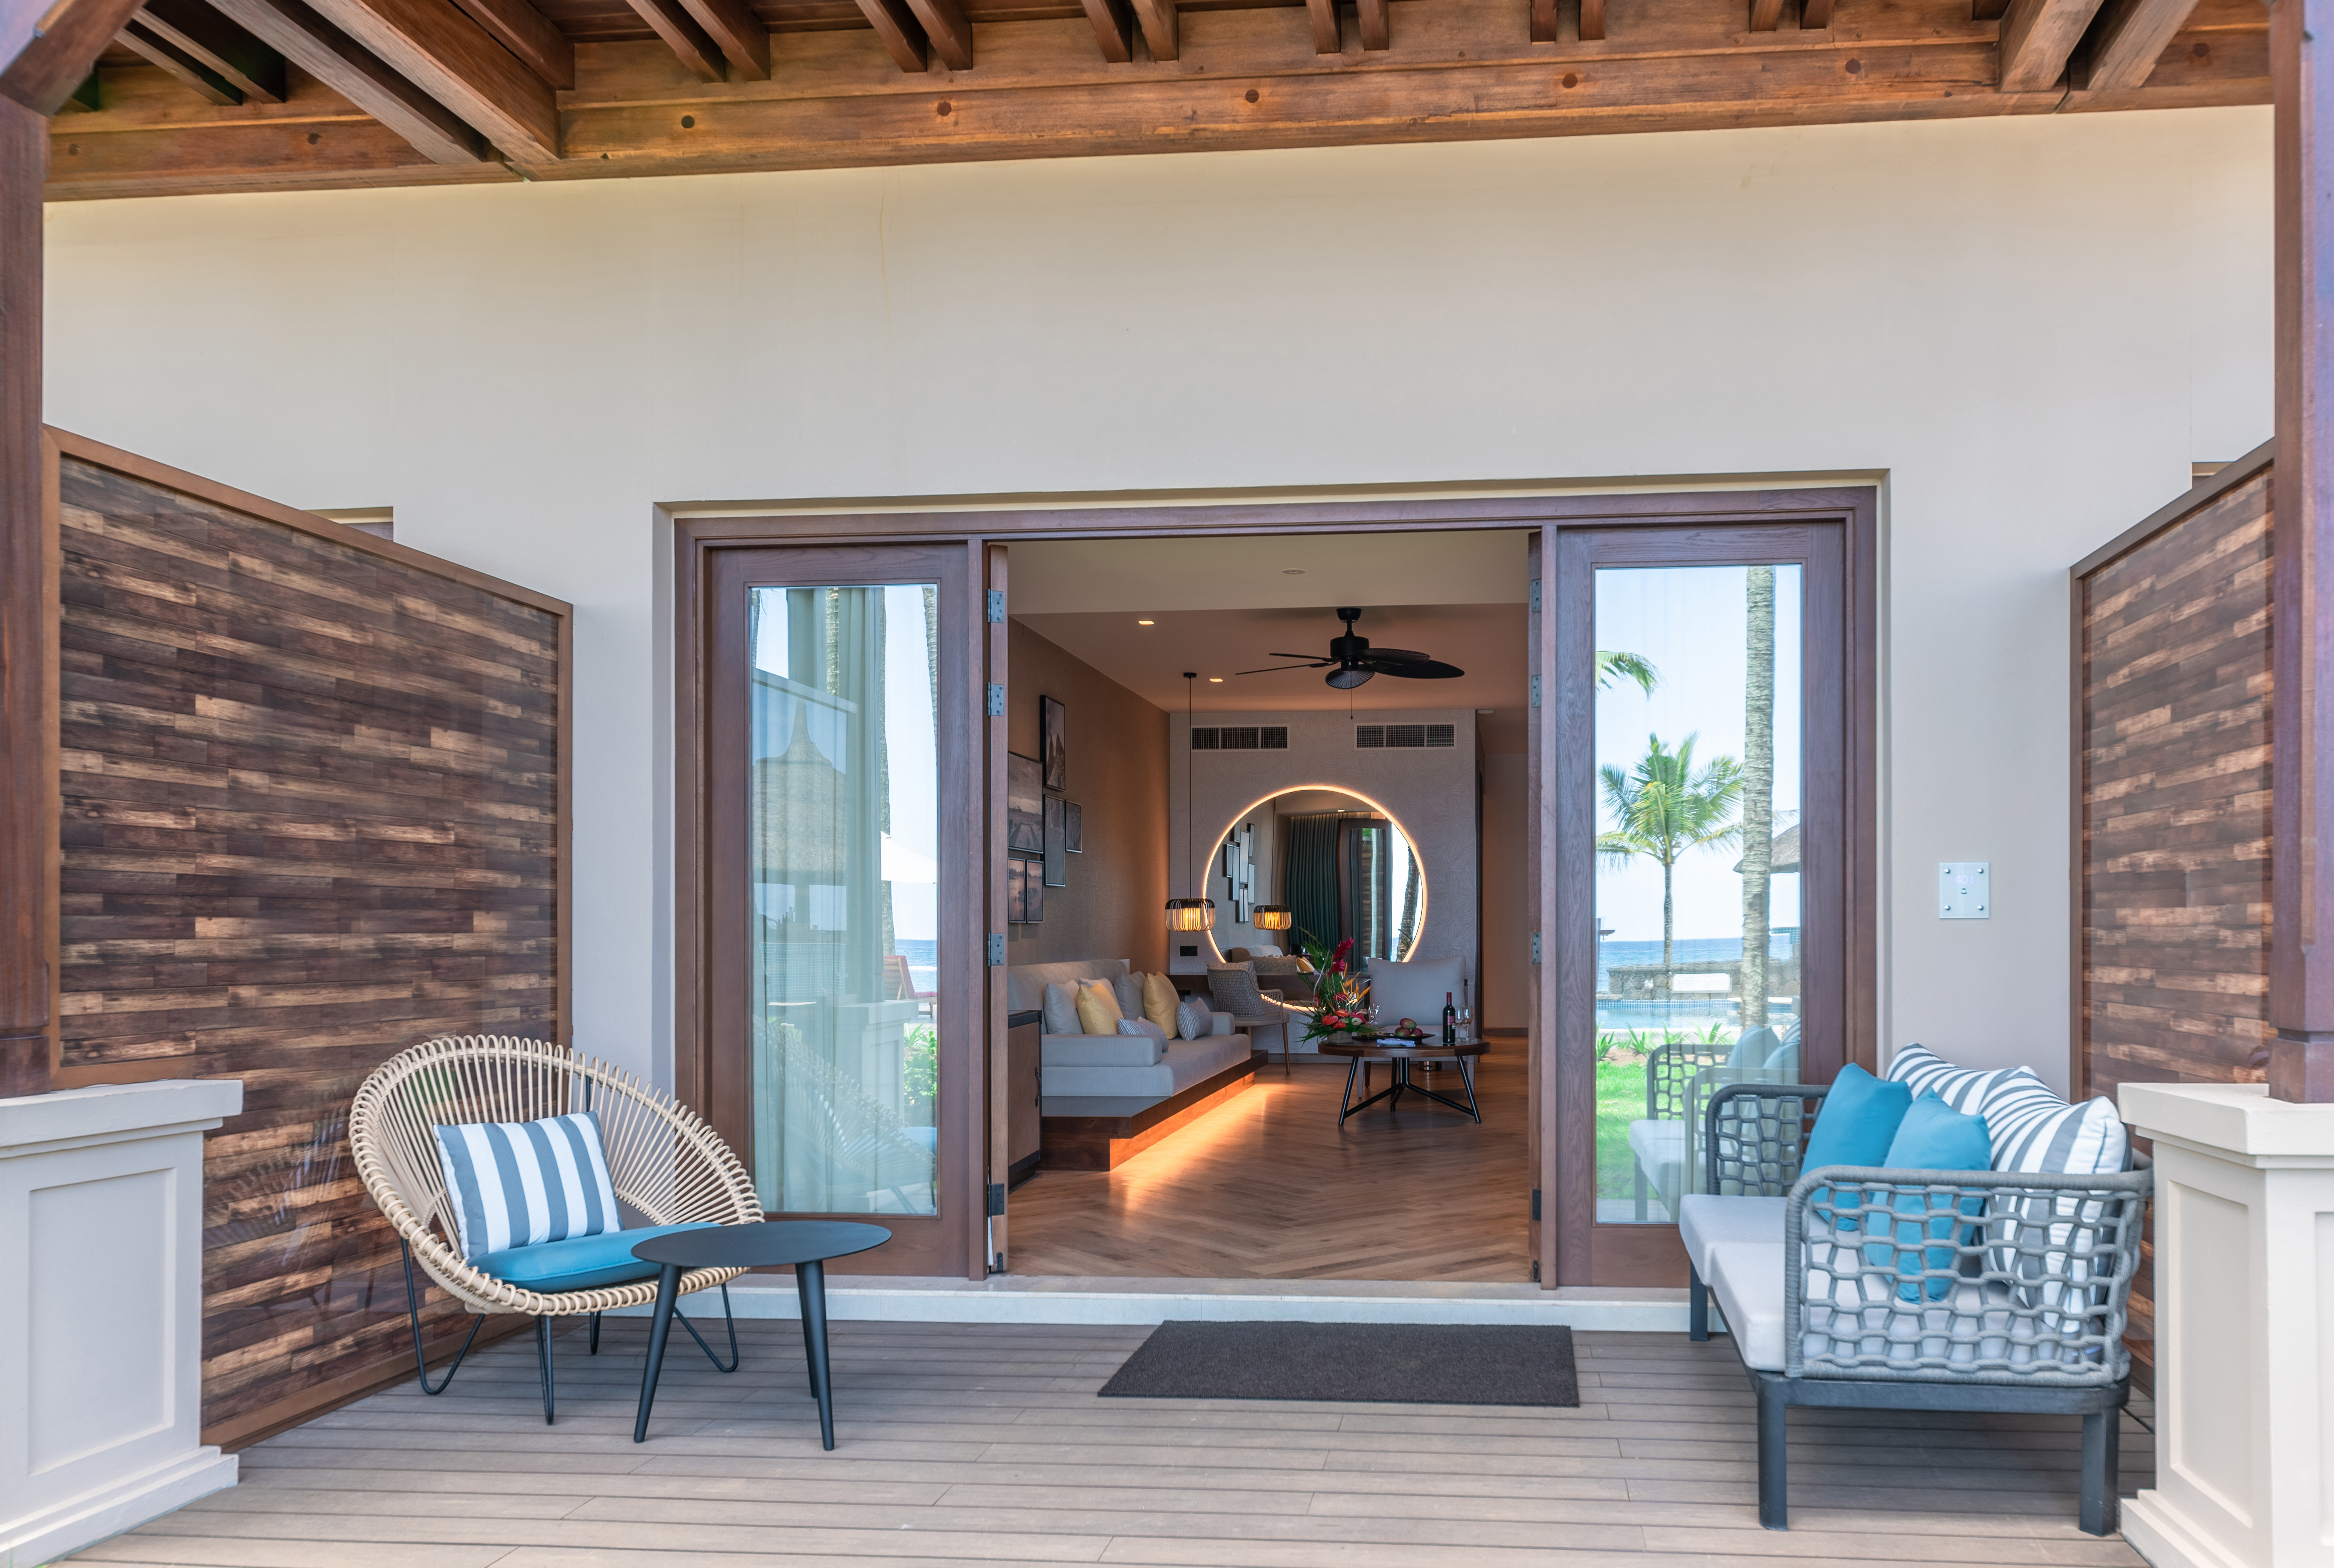 Hotel le meridien ile maurice in pointe aux piments for Hotels ile maurice